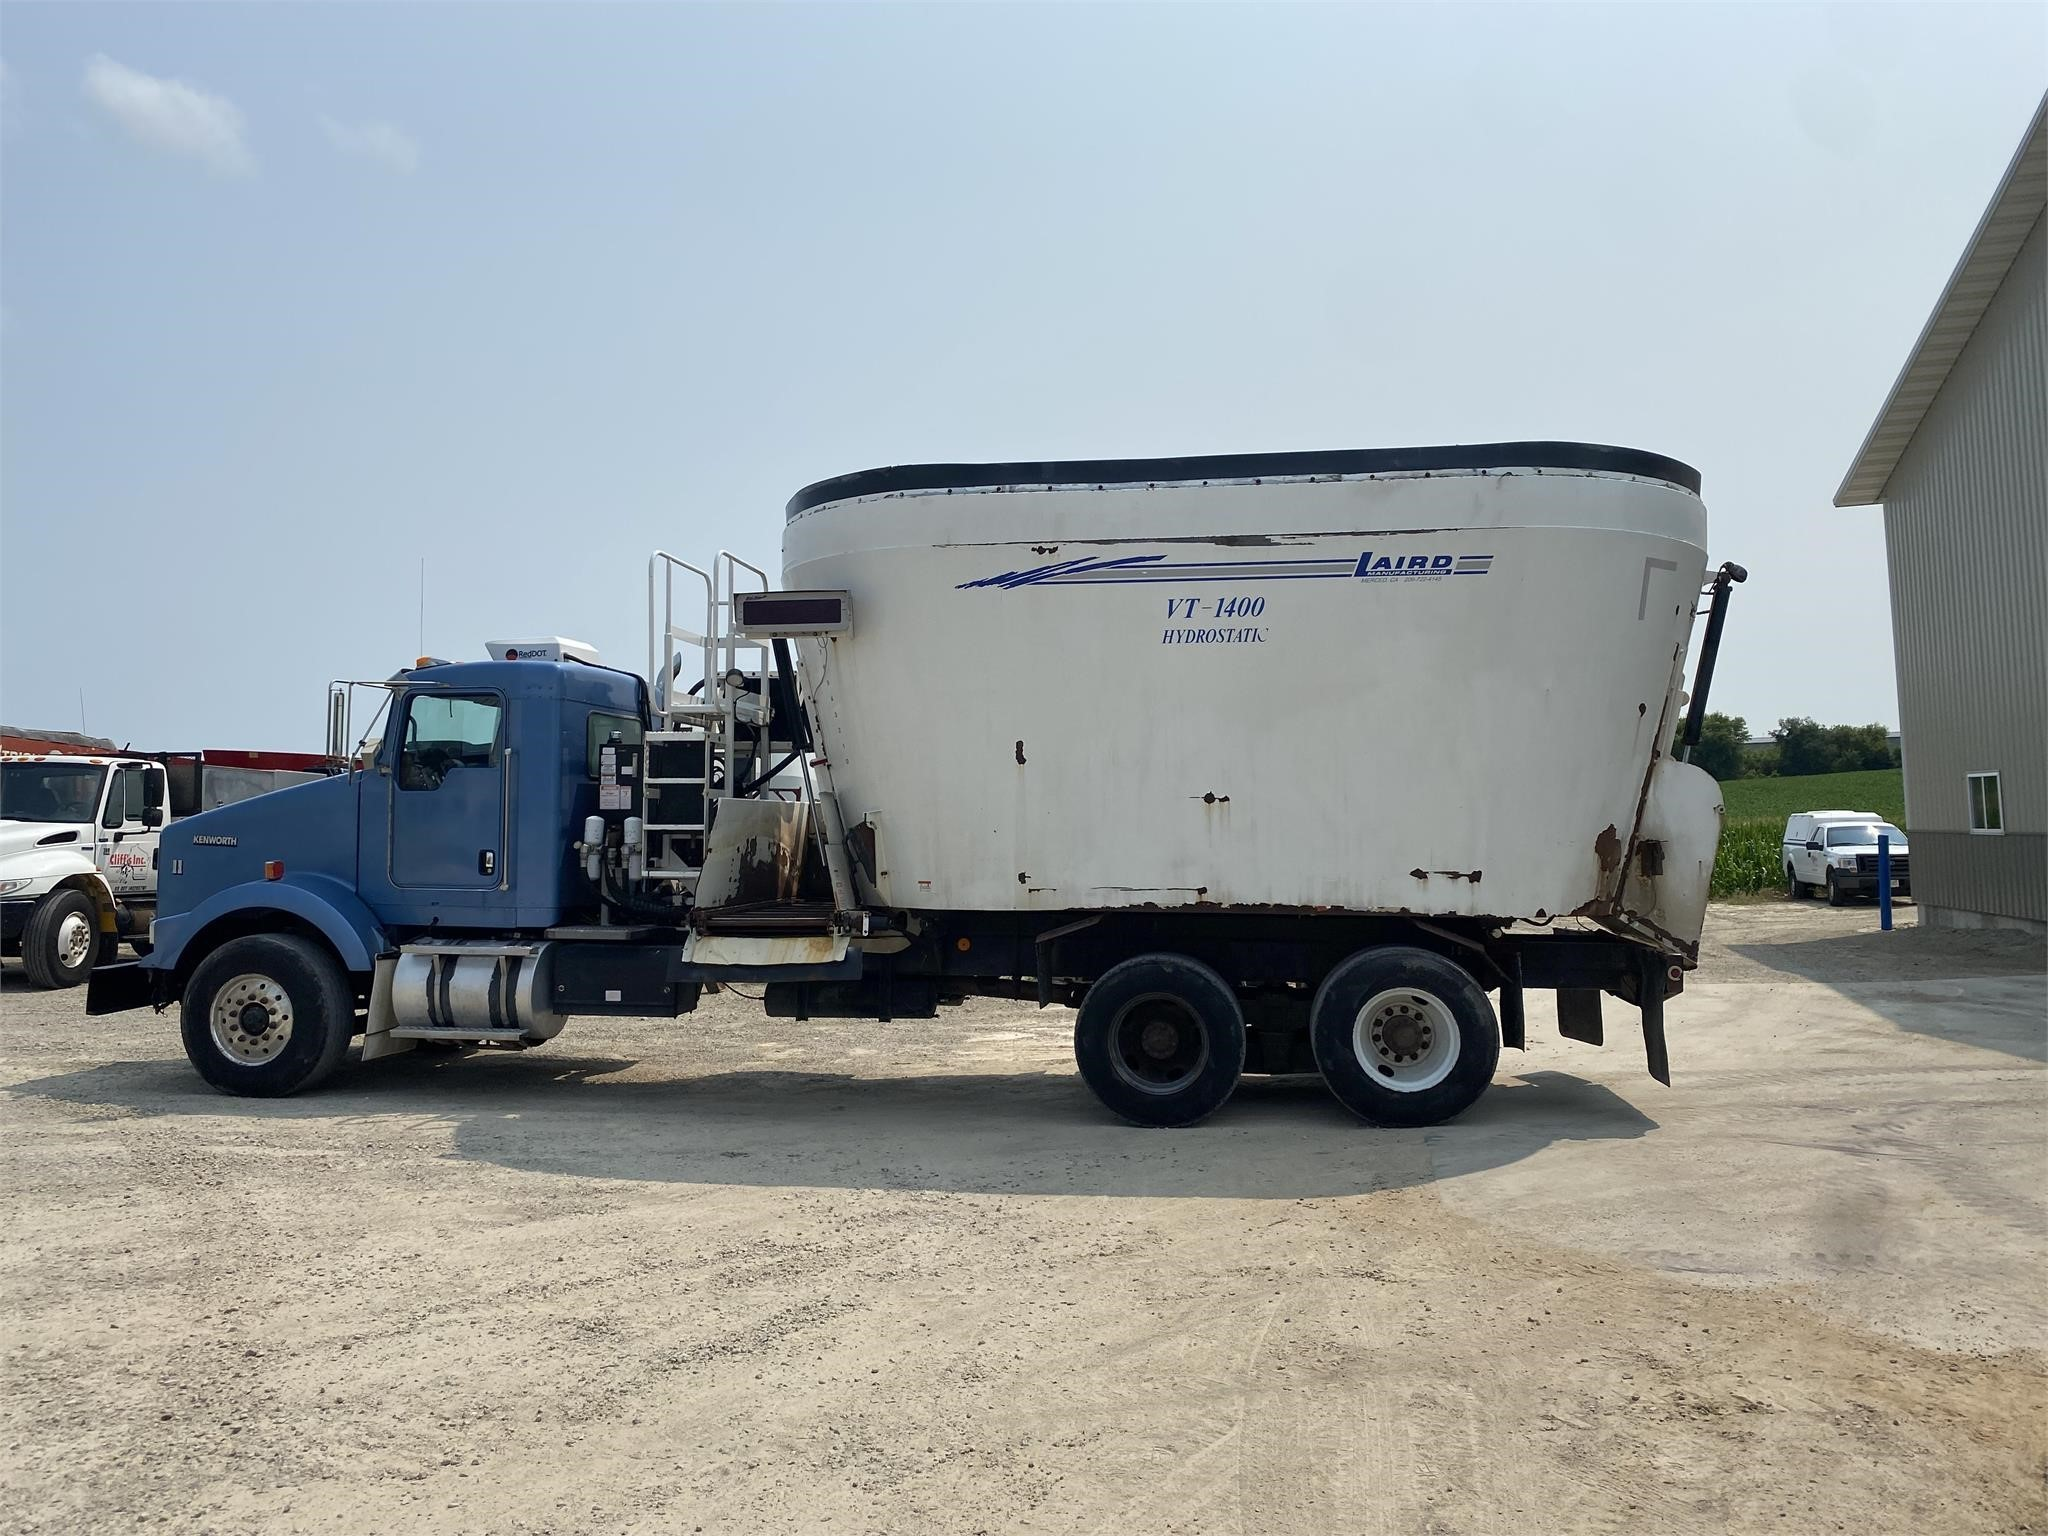 Laird VR1400 Grinders and Mixer